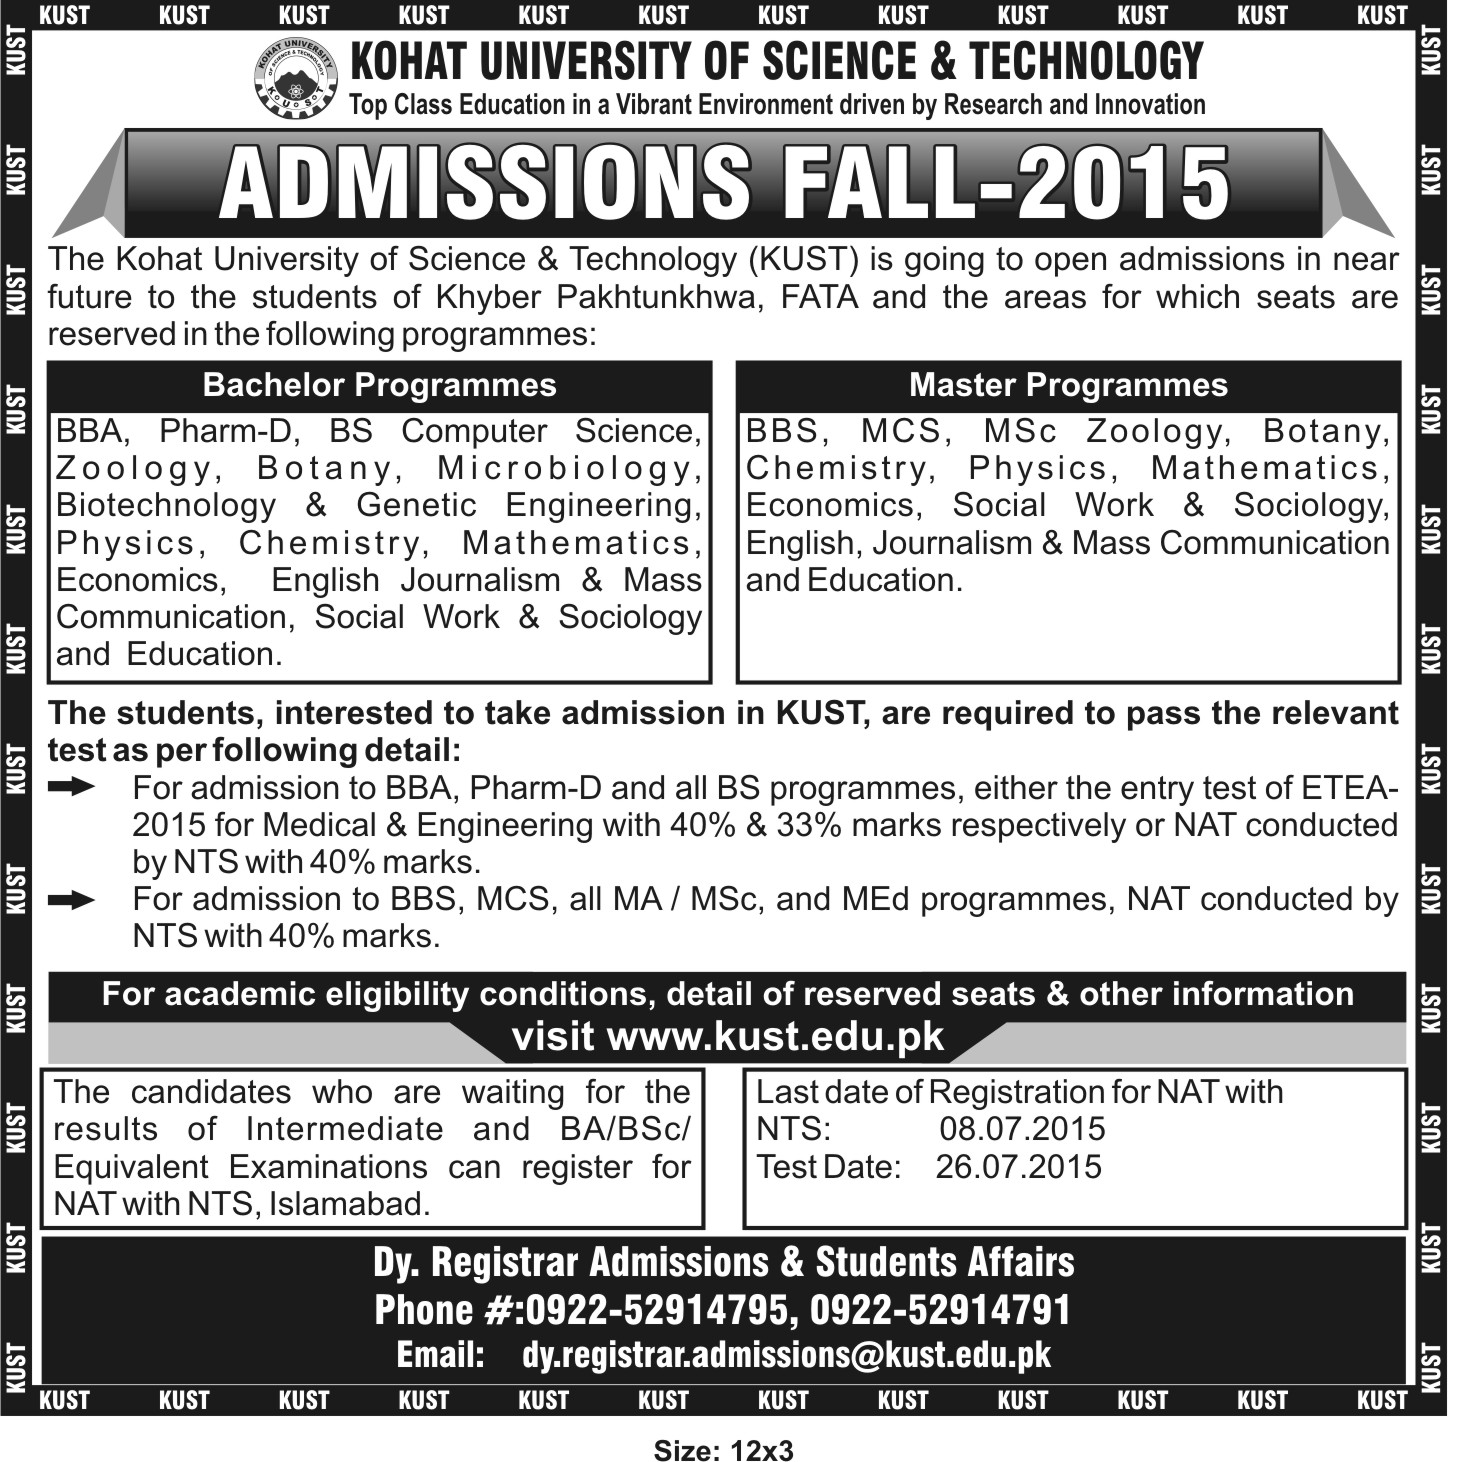 Kohat University of Science and Technology Admission Fall 2015 Form